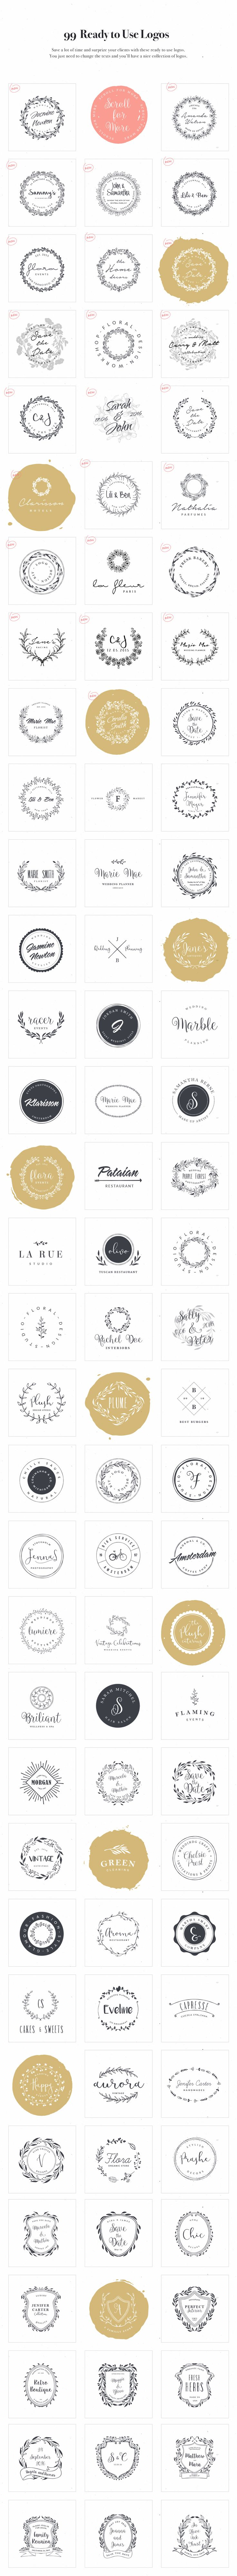 Logo Design Kit by VladCristea on @creativemarket $29.00